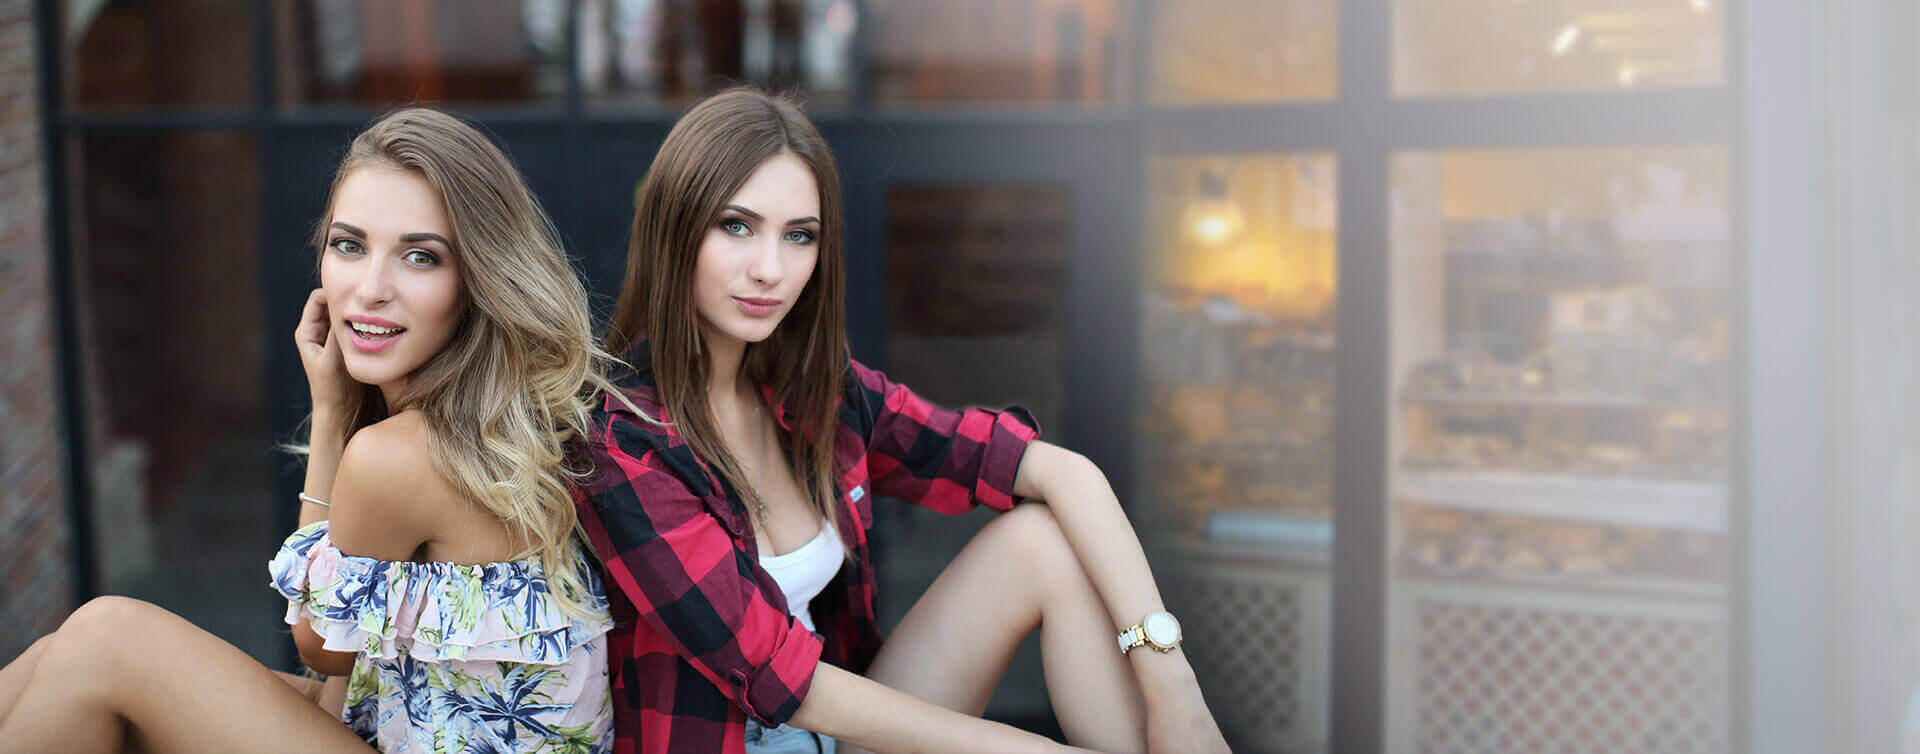 Trusted Online Dating Meet Russian WomenExperience the Best